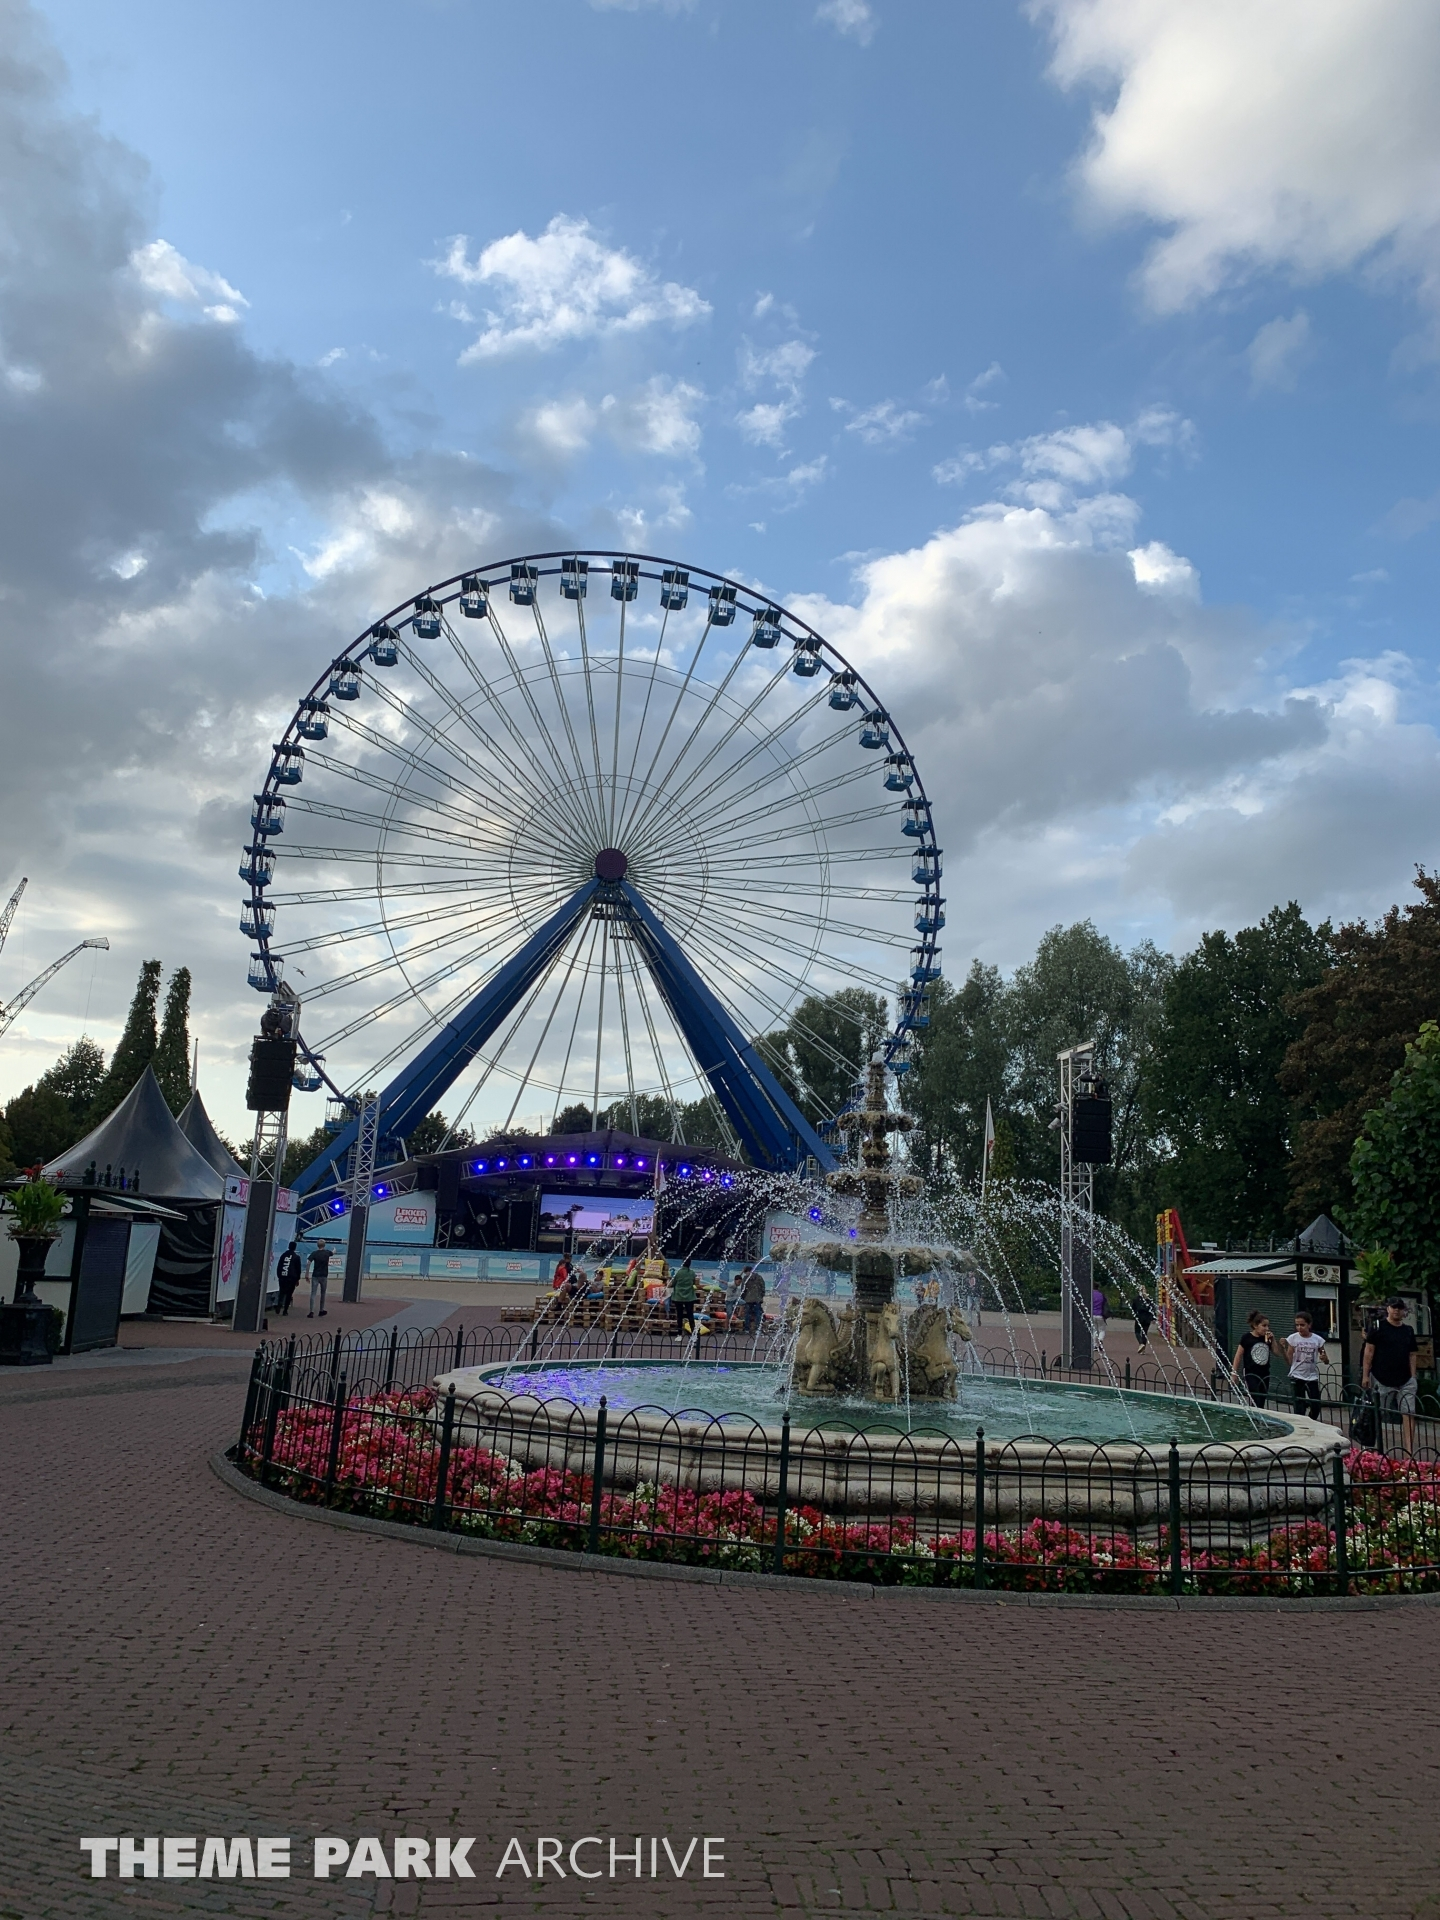 La Grande Roue at Walibi Holland